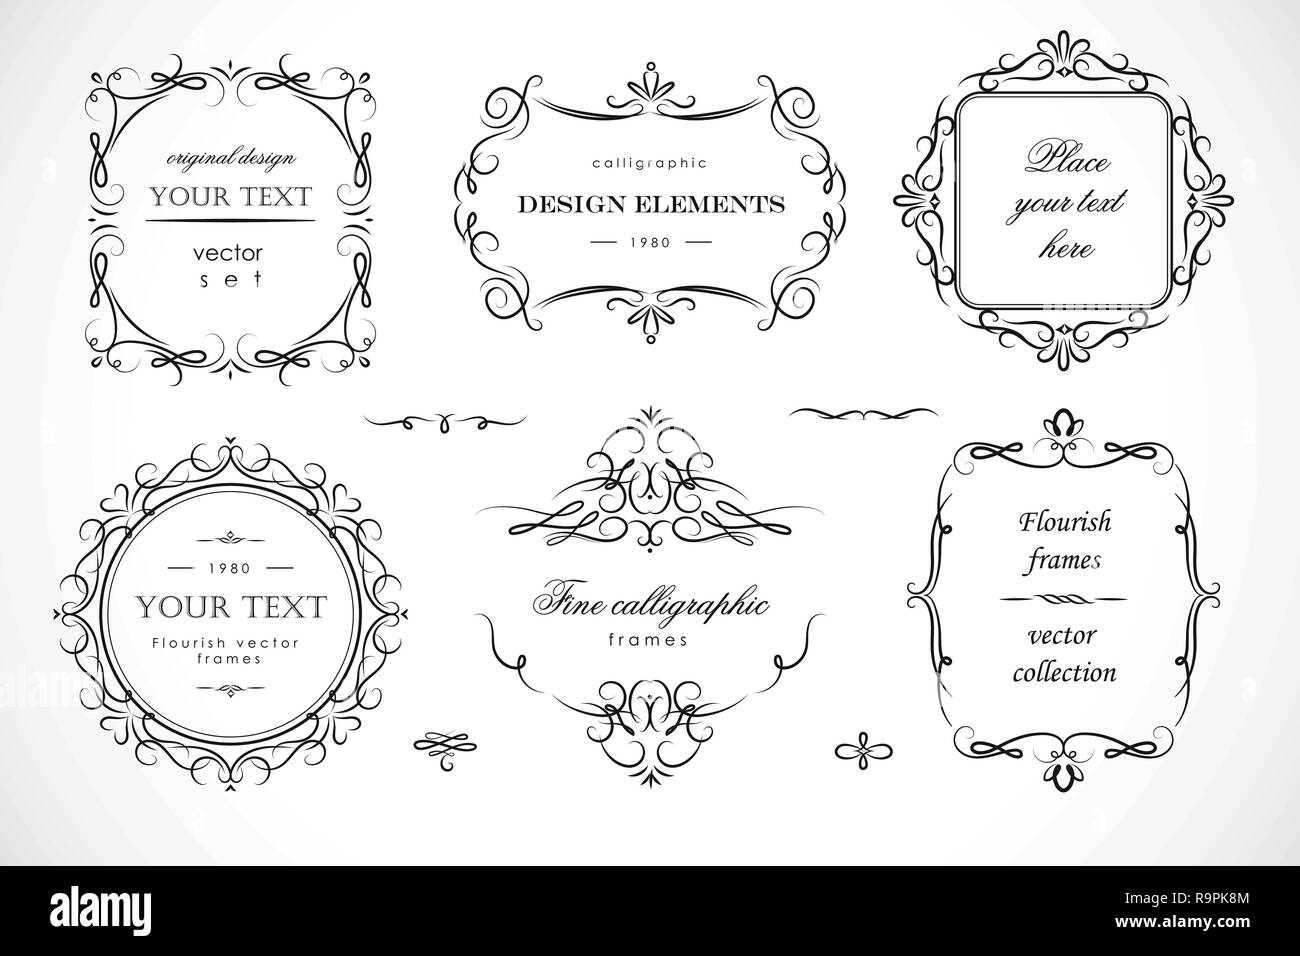 Set of flourish frames, borders, labels. Collection of original design elements. Vector calligraphy swirls, swashes, ornate motifs and scrolls. - Stock Image